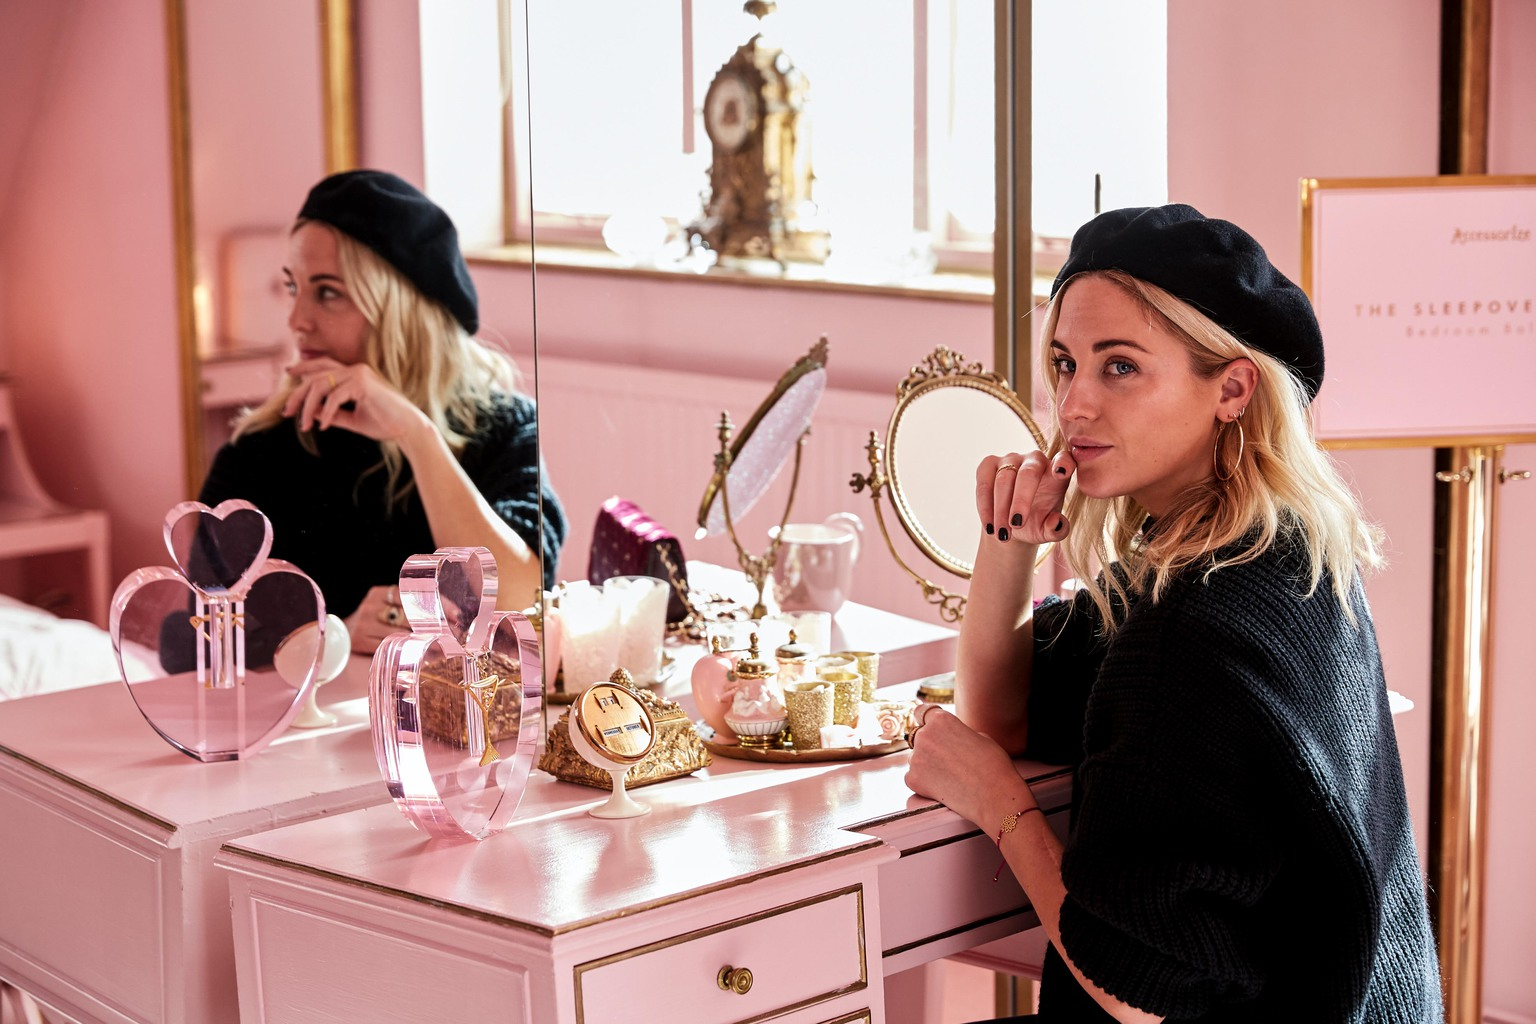 A DAY IN THE LIFE: GIRL CHAT & ACCESSORIZING FOR AUTUMN